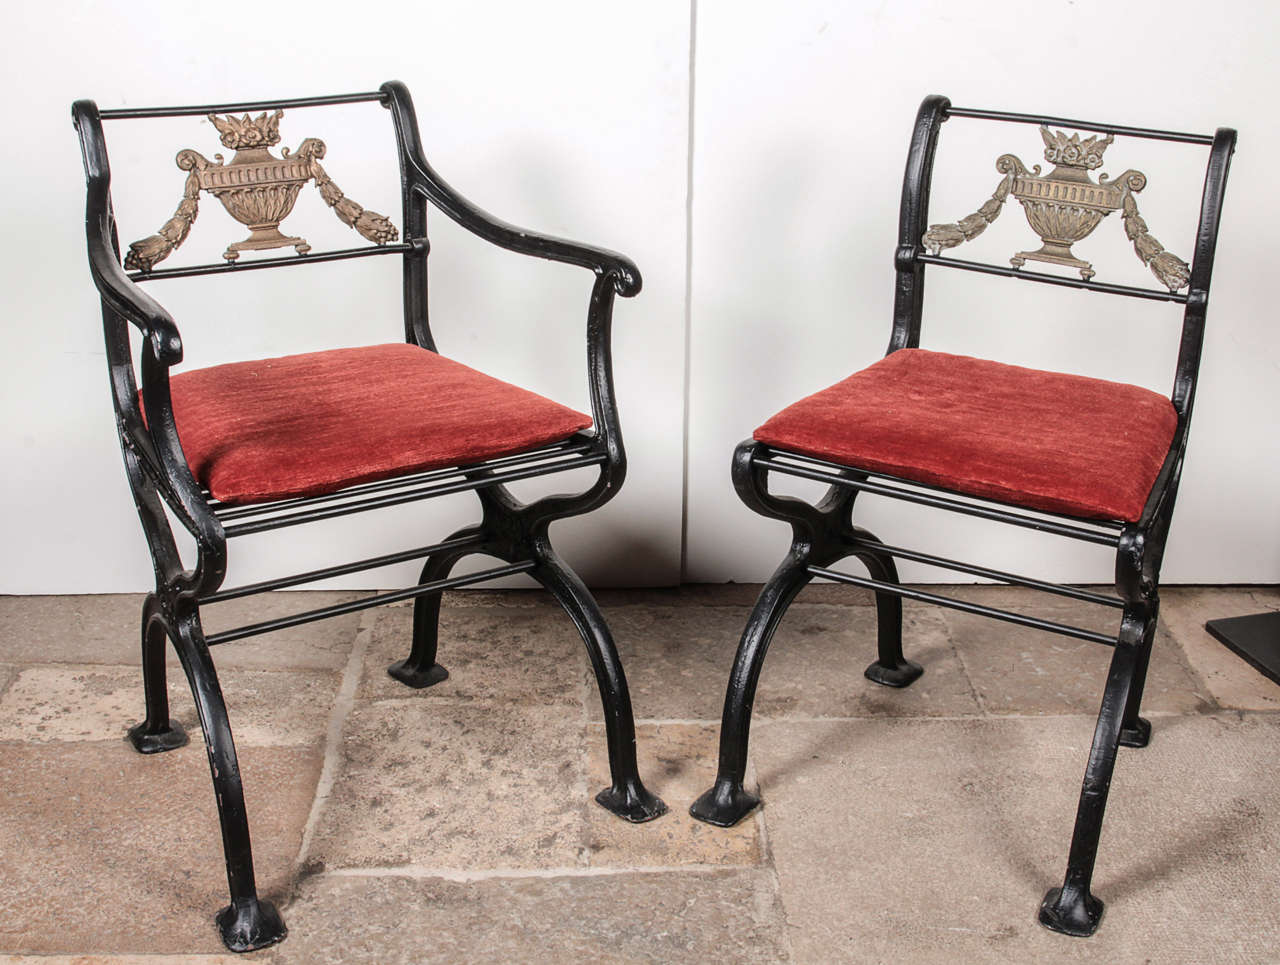 Best Of Cast Iron Outdoor Furniture for Sale